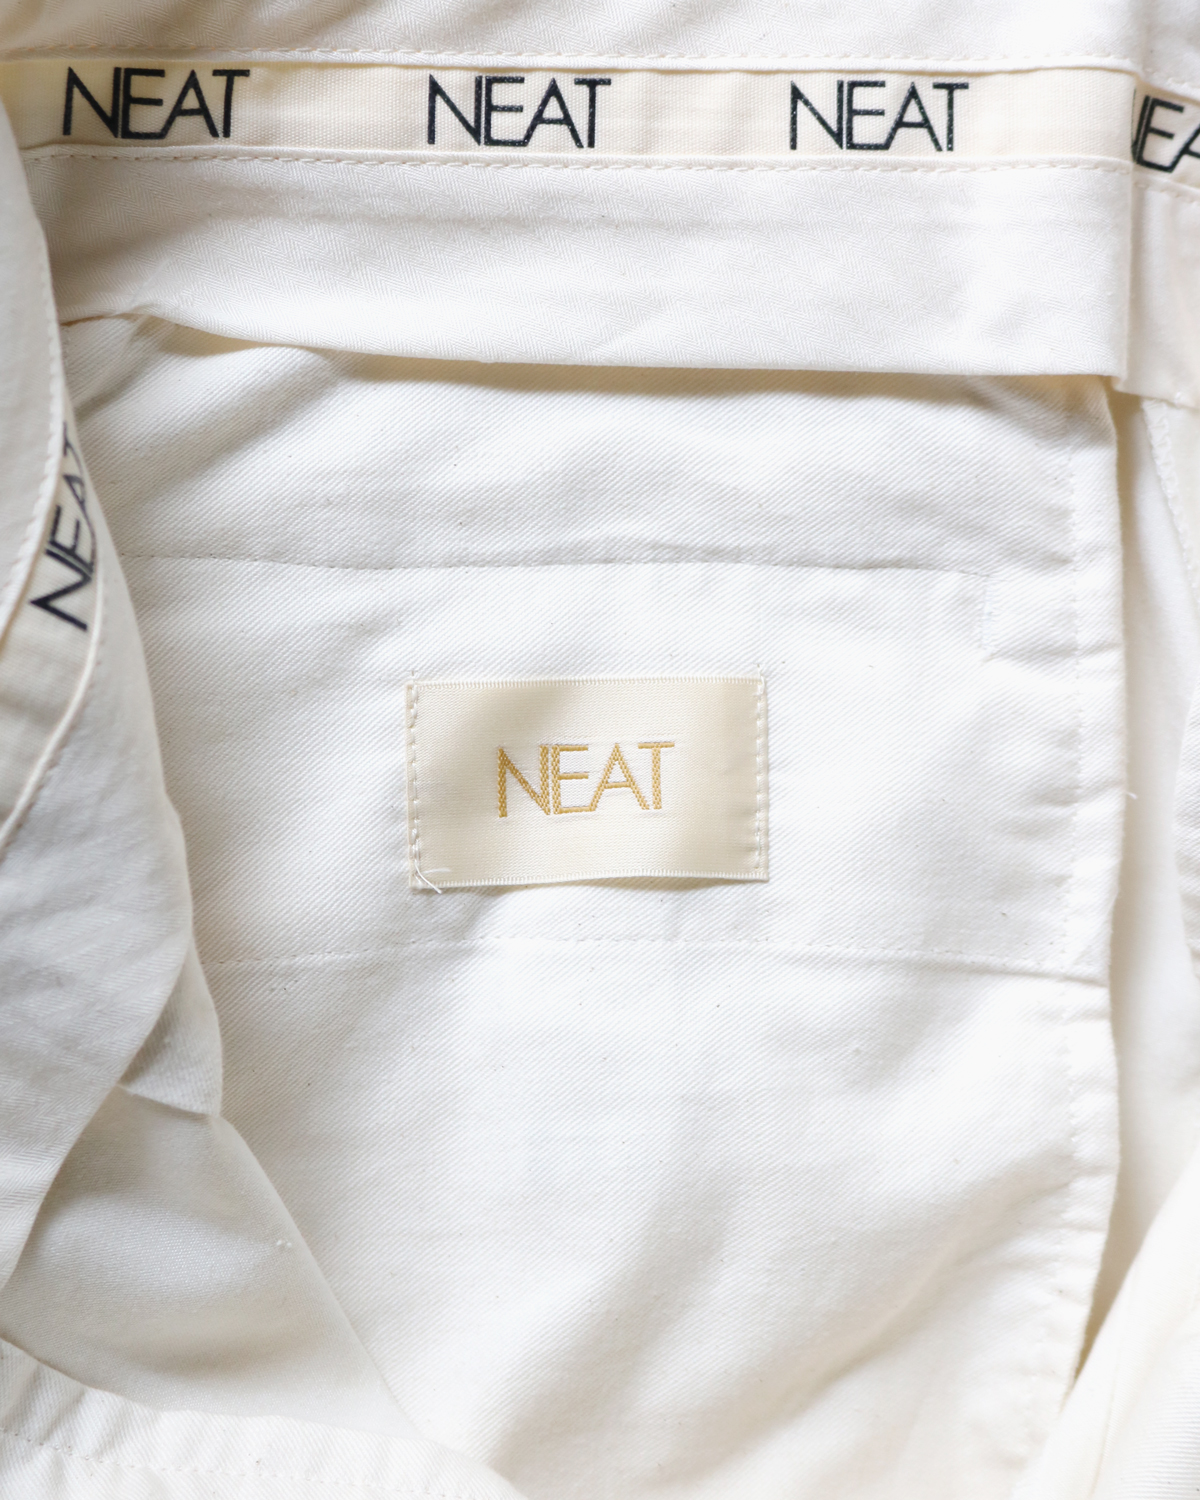 CELLULOSE NIDOM|WIDE - White|NEAT